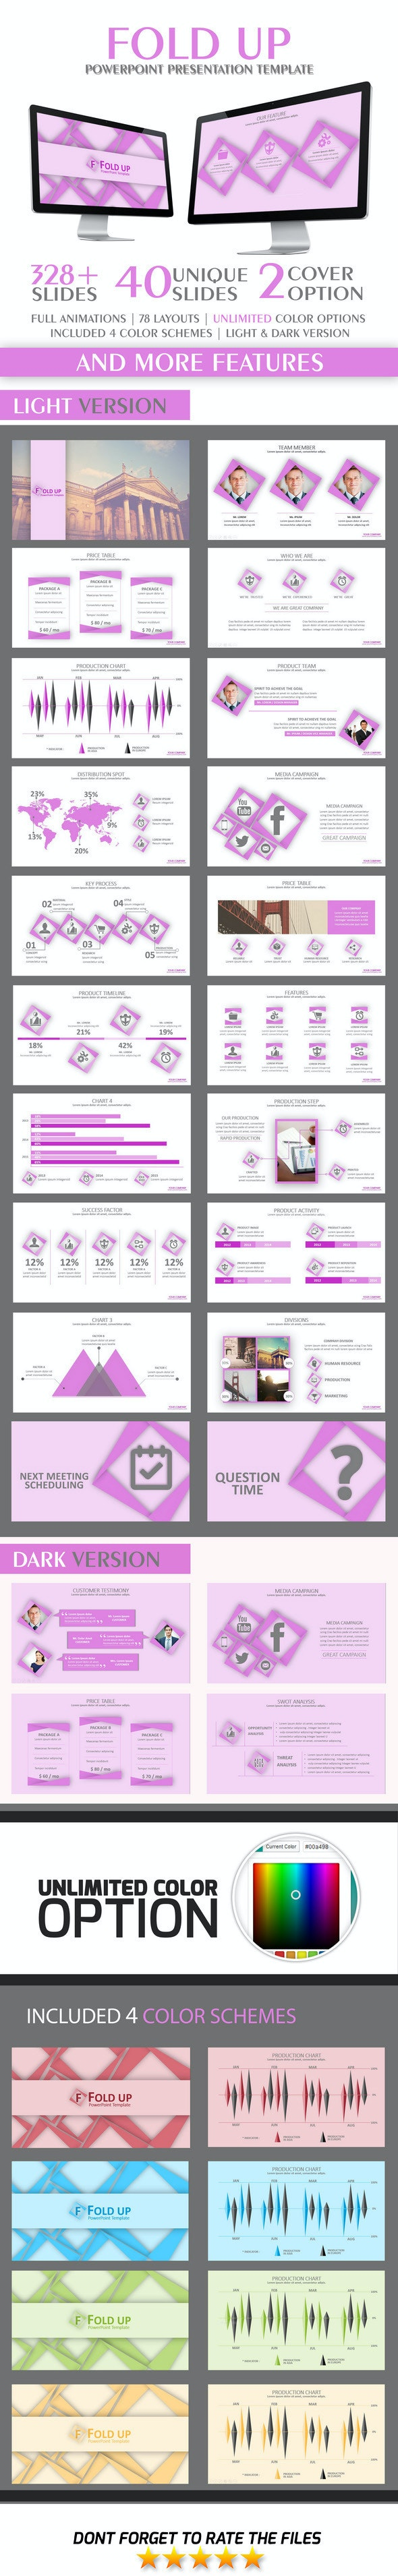 Fold Up PowerPoint Template - Business PowerPoint Templates